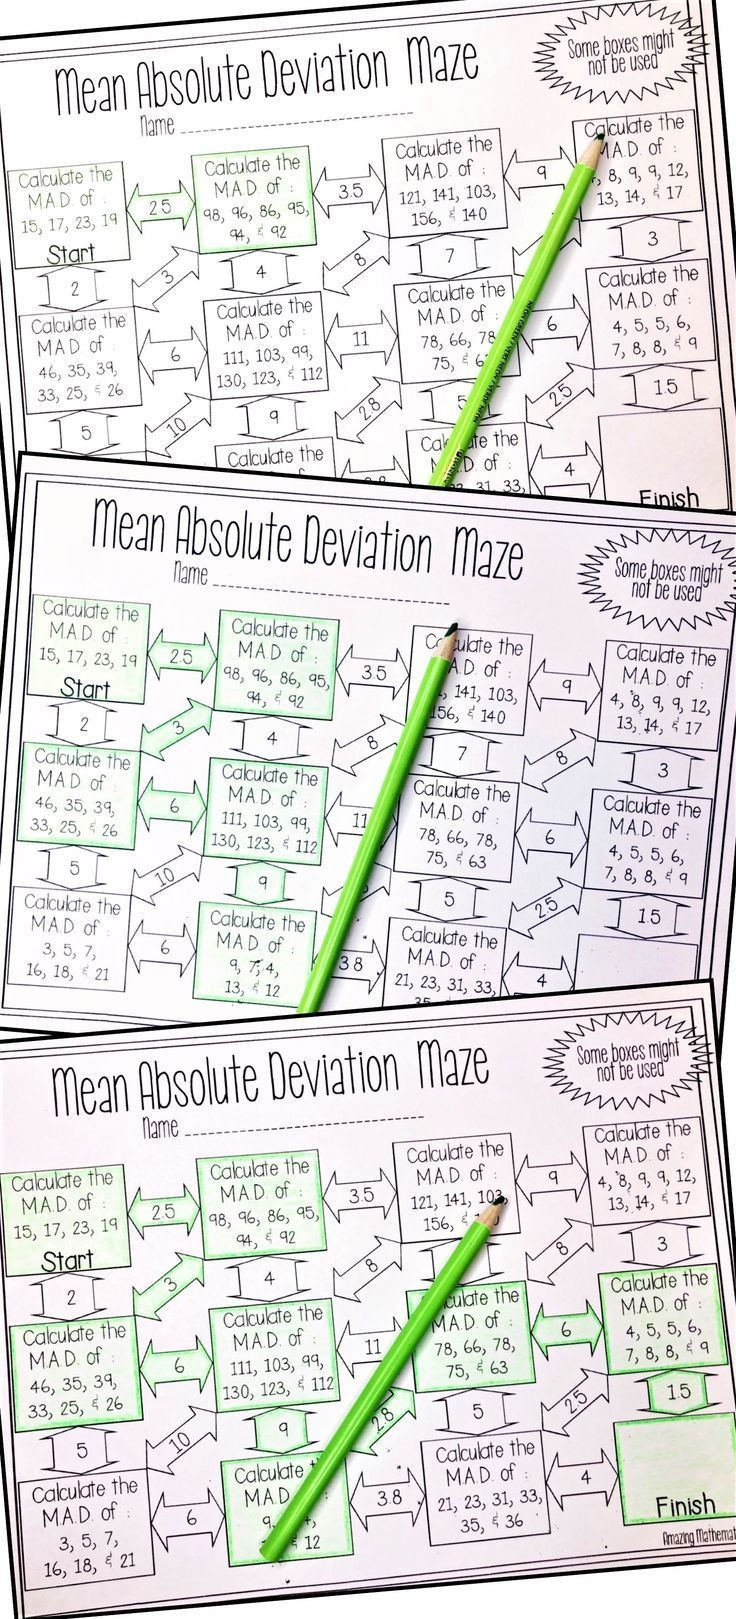 This Mean Absolute Deviation Maze Was The Perfect Worksheet To Help With Calculating Mean Absolute Dev Math Worksheets 8th Grade Math Worksheets 8th Grade Math [ 1619 x 736 Pixel ]